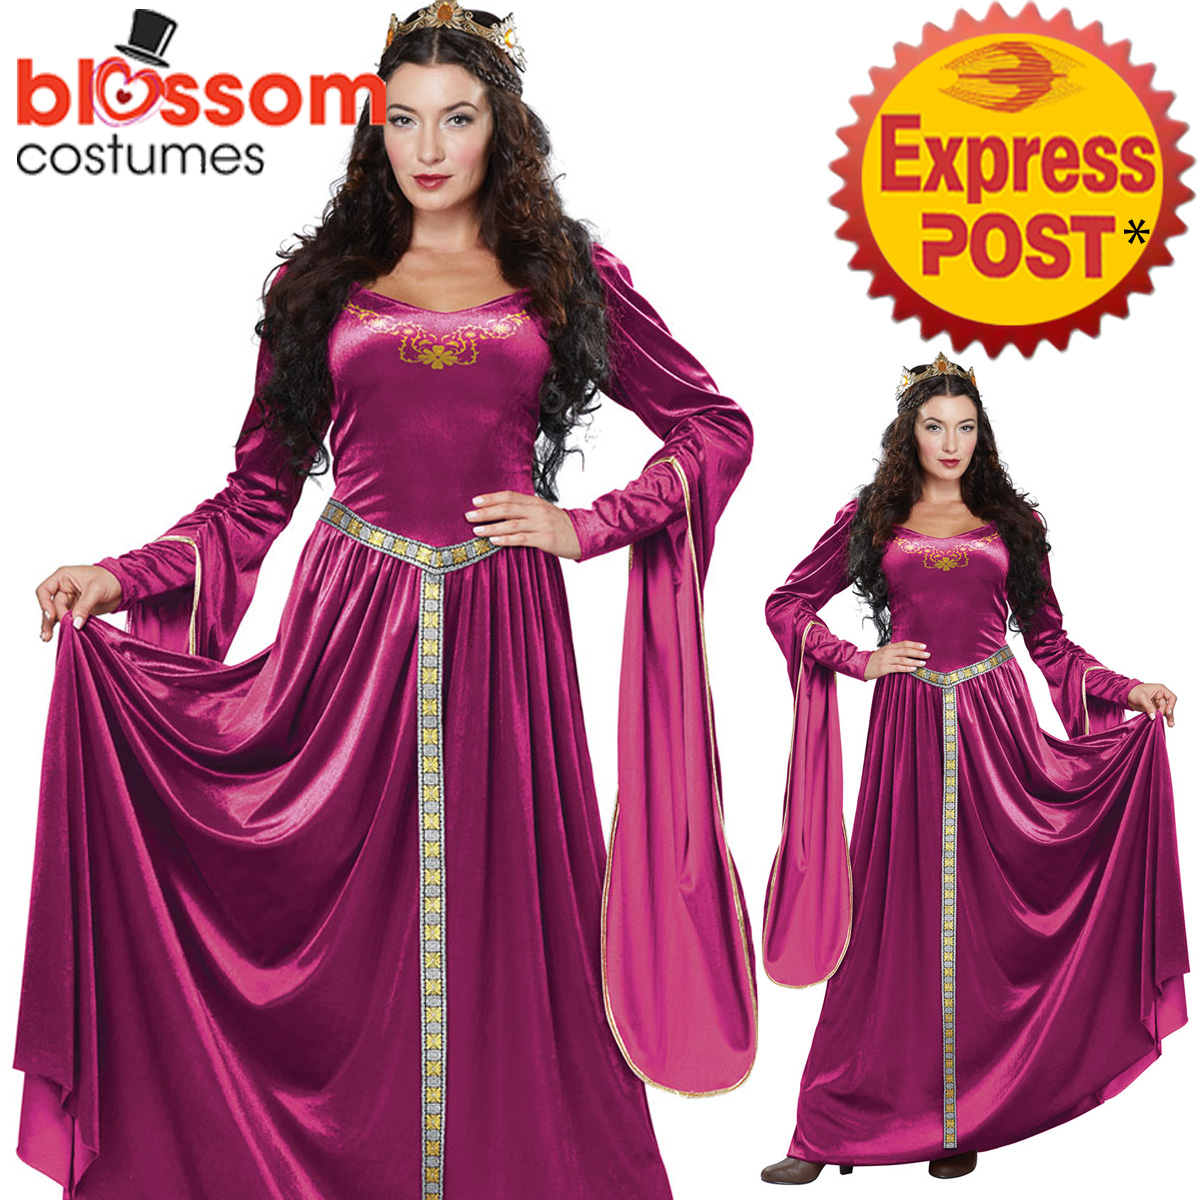 CA141 BURGUNDY Lady Guinevere Renaissance Queen Medieval Maiden Gown ...